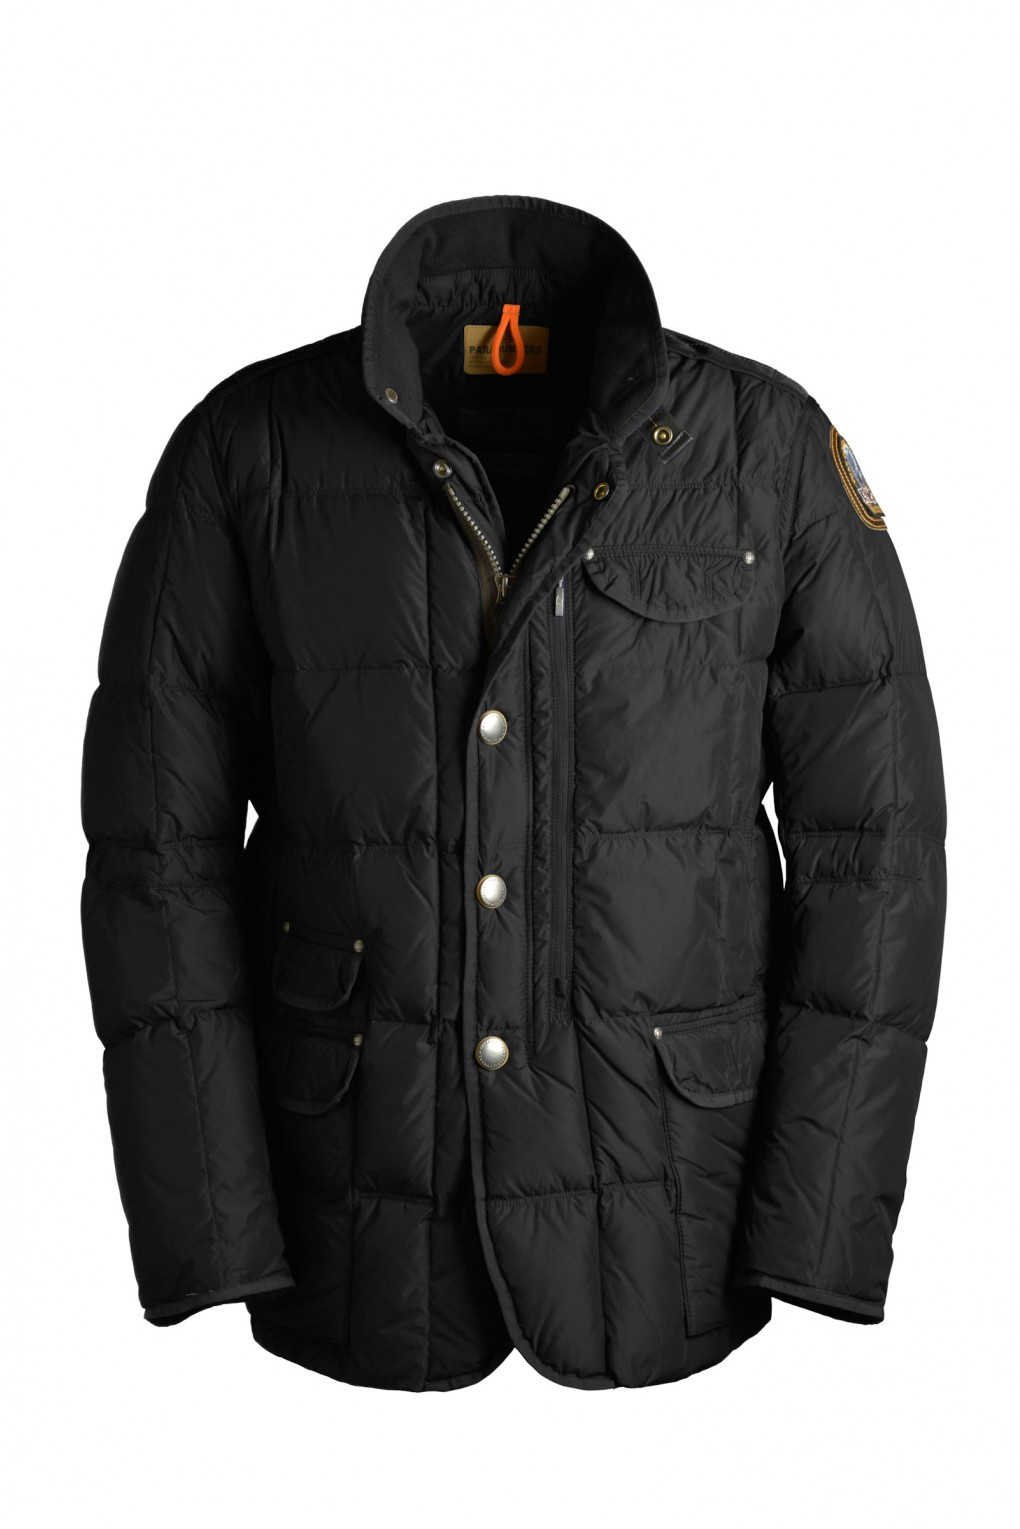 parajumpers BLAZER man outerwear Black